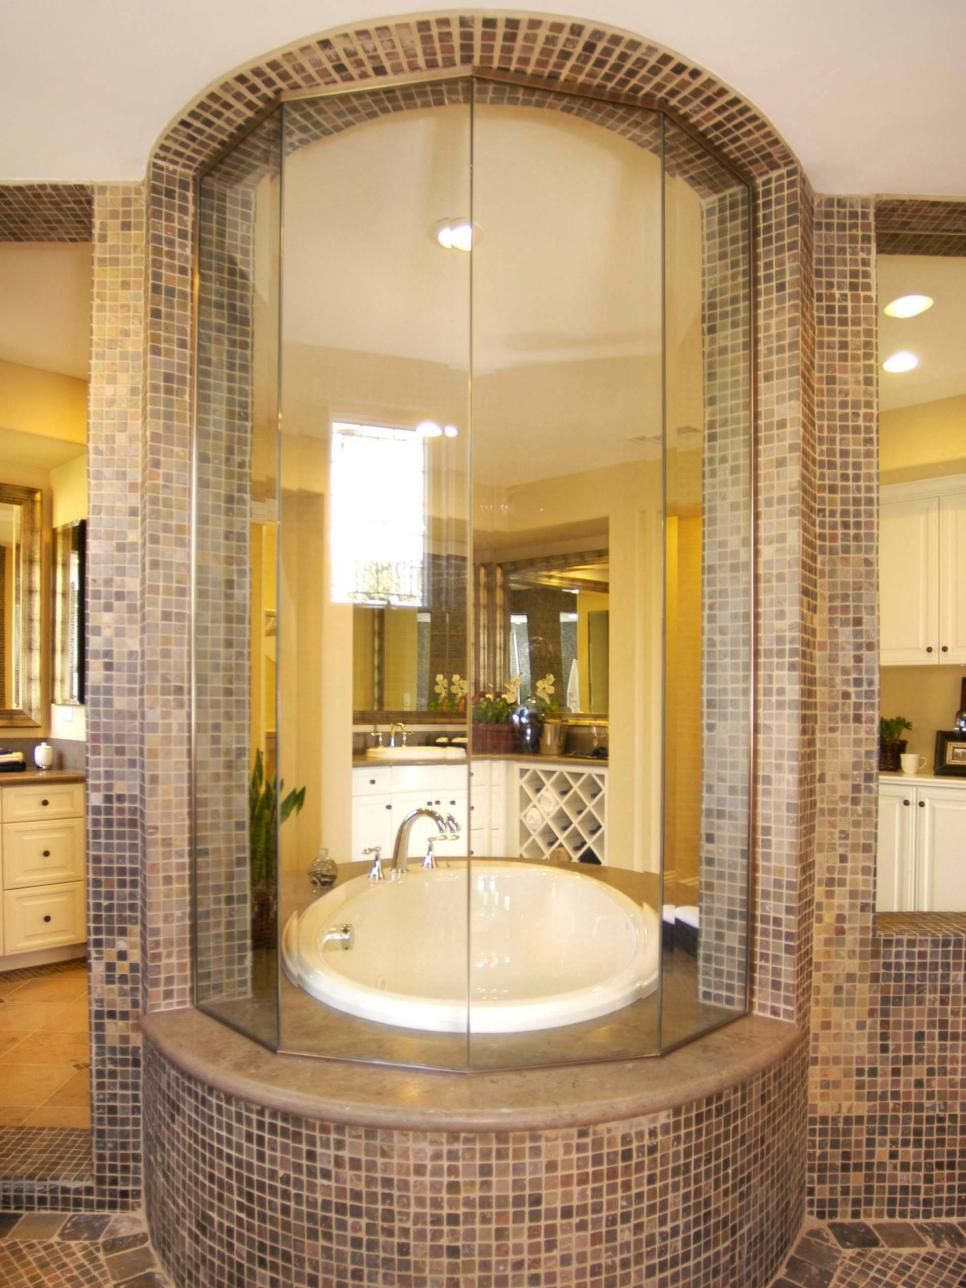 Tub and Shower Trends | Japanese soaking tubs, Tubs and Jacuzzi tub